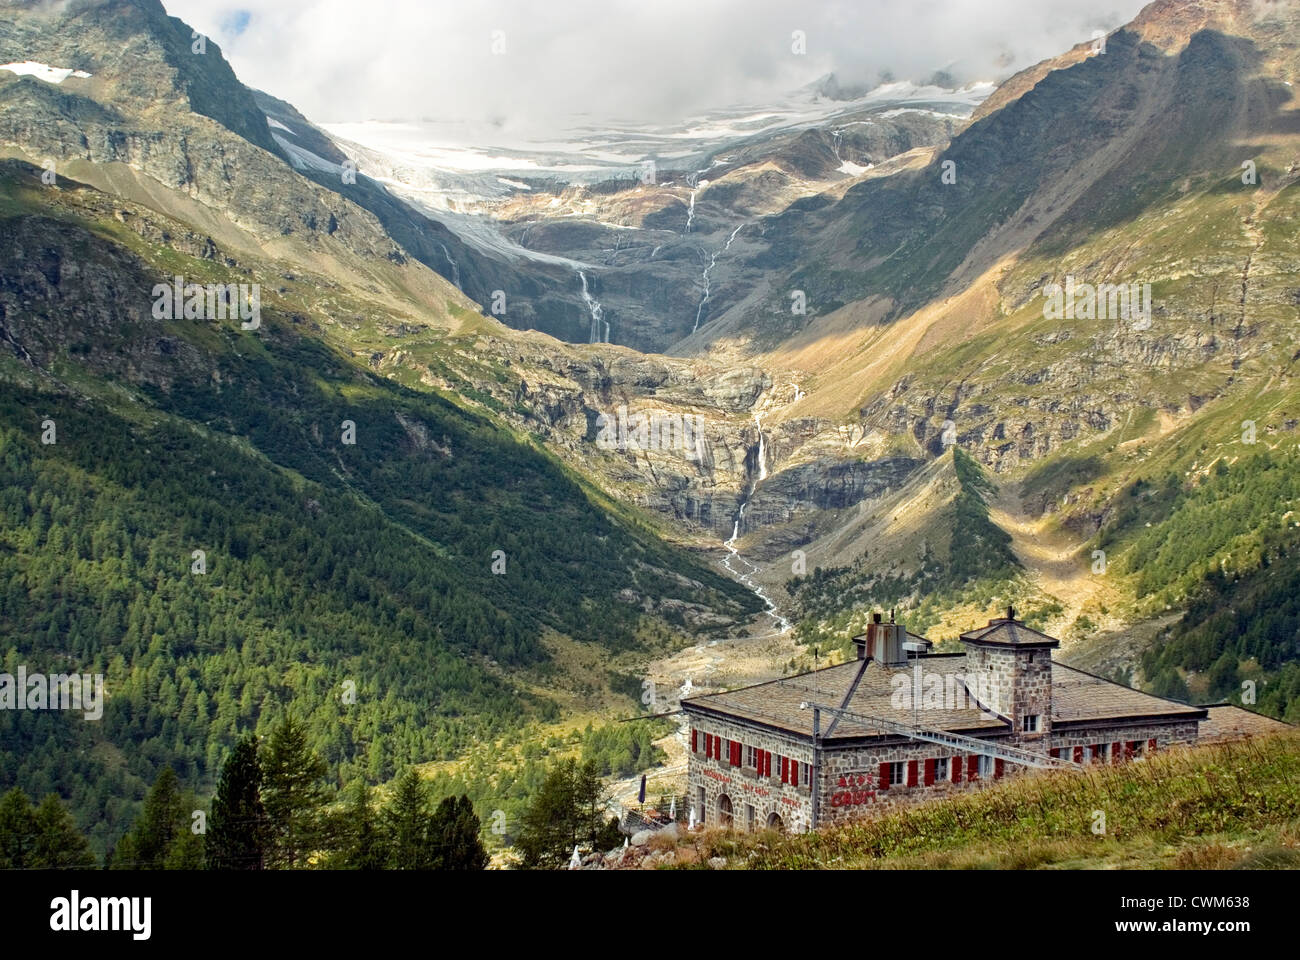 Alp Grüm Train Station and Palü Glacier, Switzerland | Bahnstation Alp Grüm und Palü Gletscher, - Stock Image